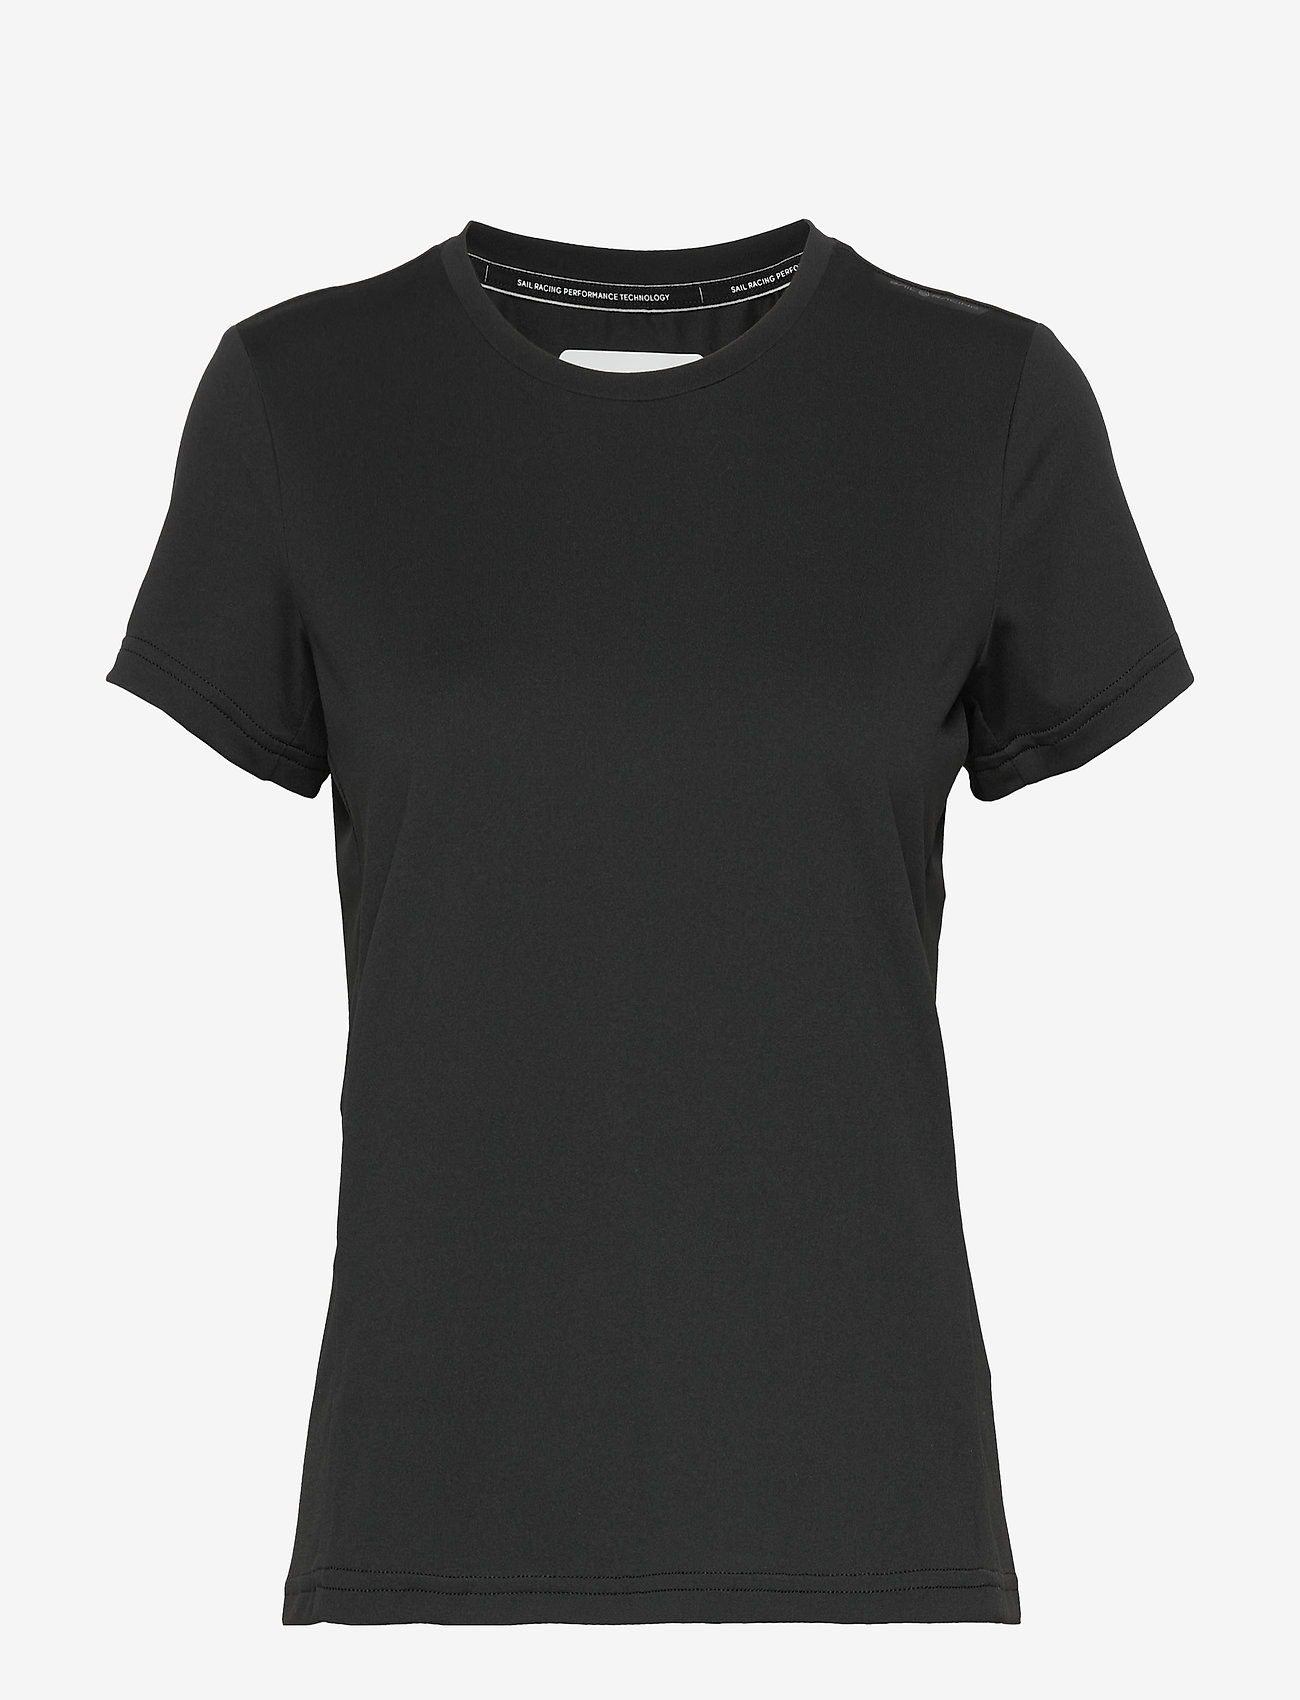 Sail Racing - W GALE TECHNICAL TEE - t-shirts - carbon - 0